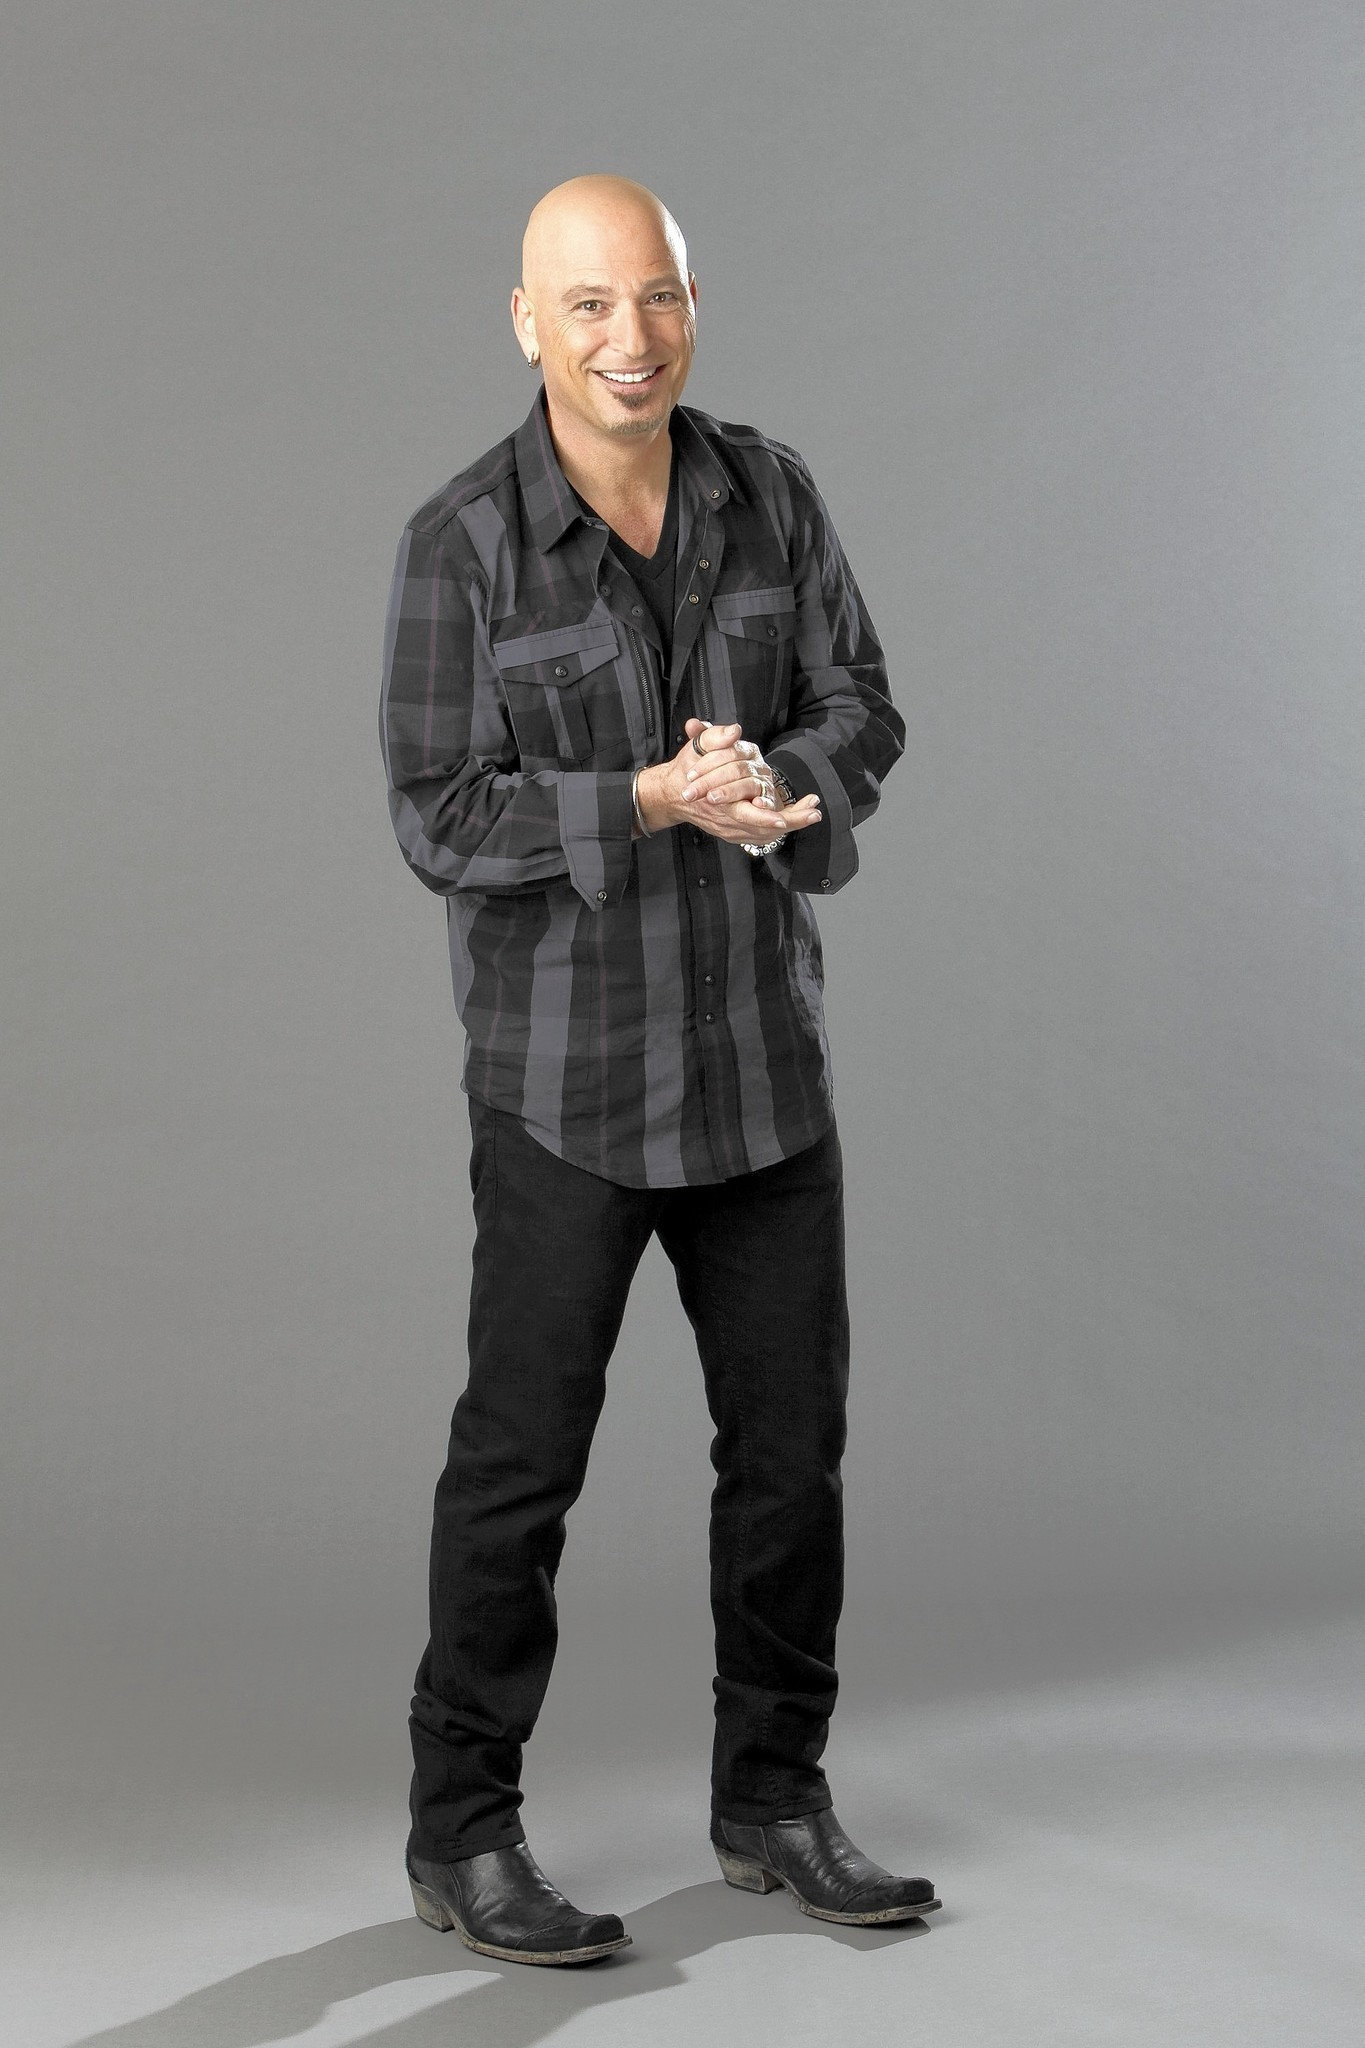 Howie mandel m m group for Howie at home